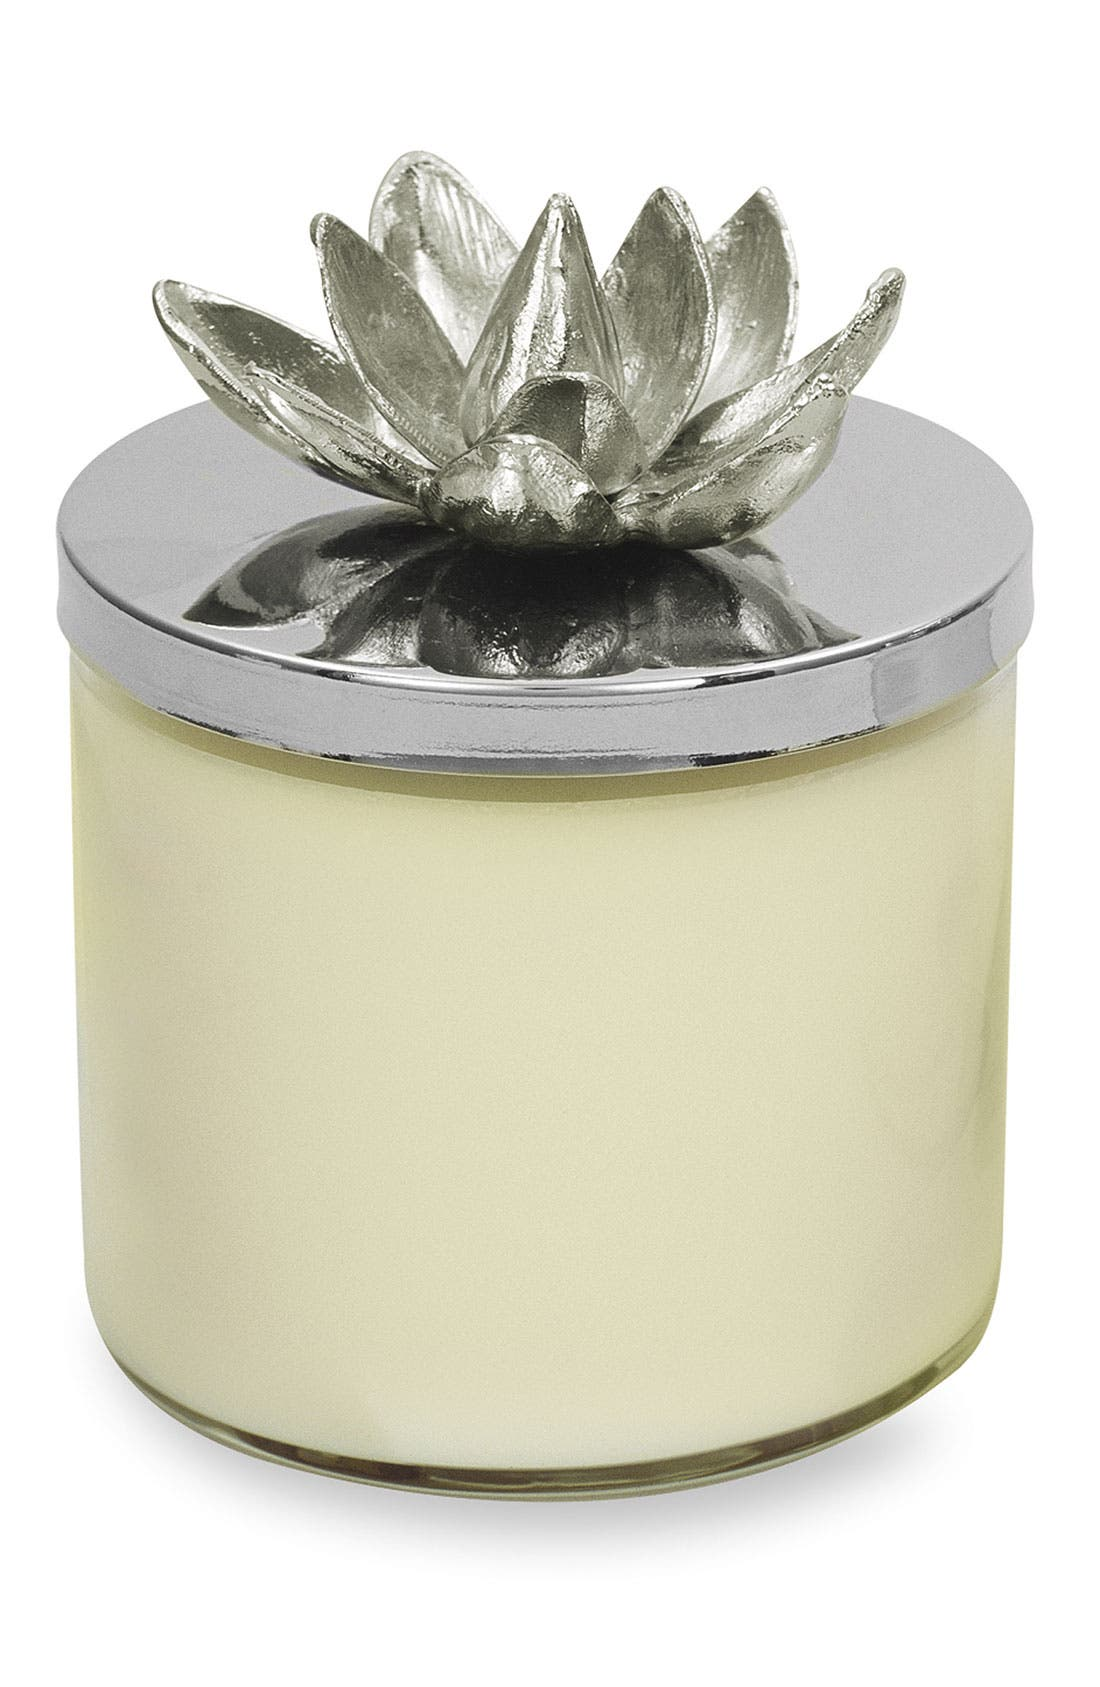 Main Image - Michael Aram 'Lotus Blossom' Soy Wax Candle